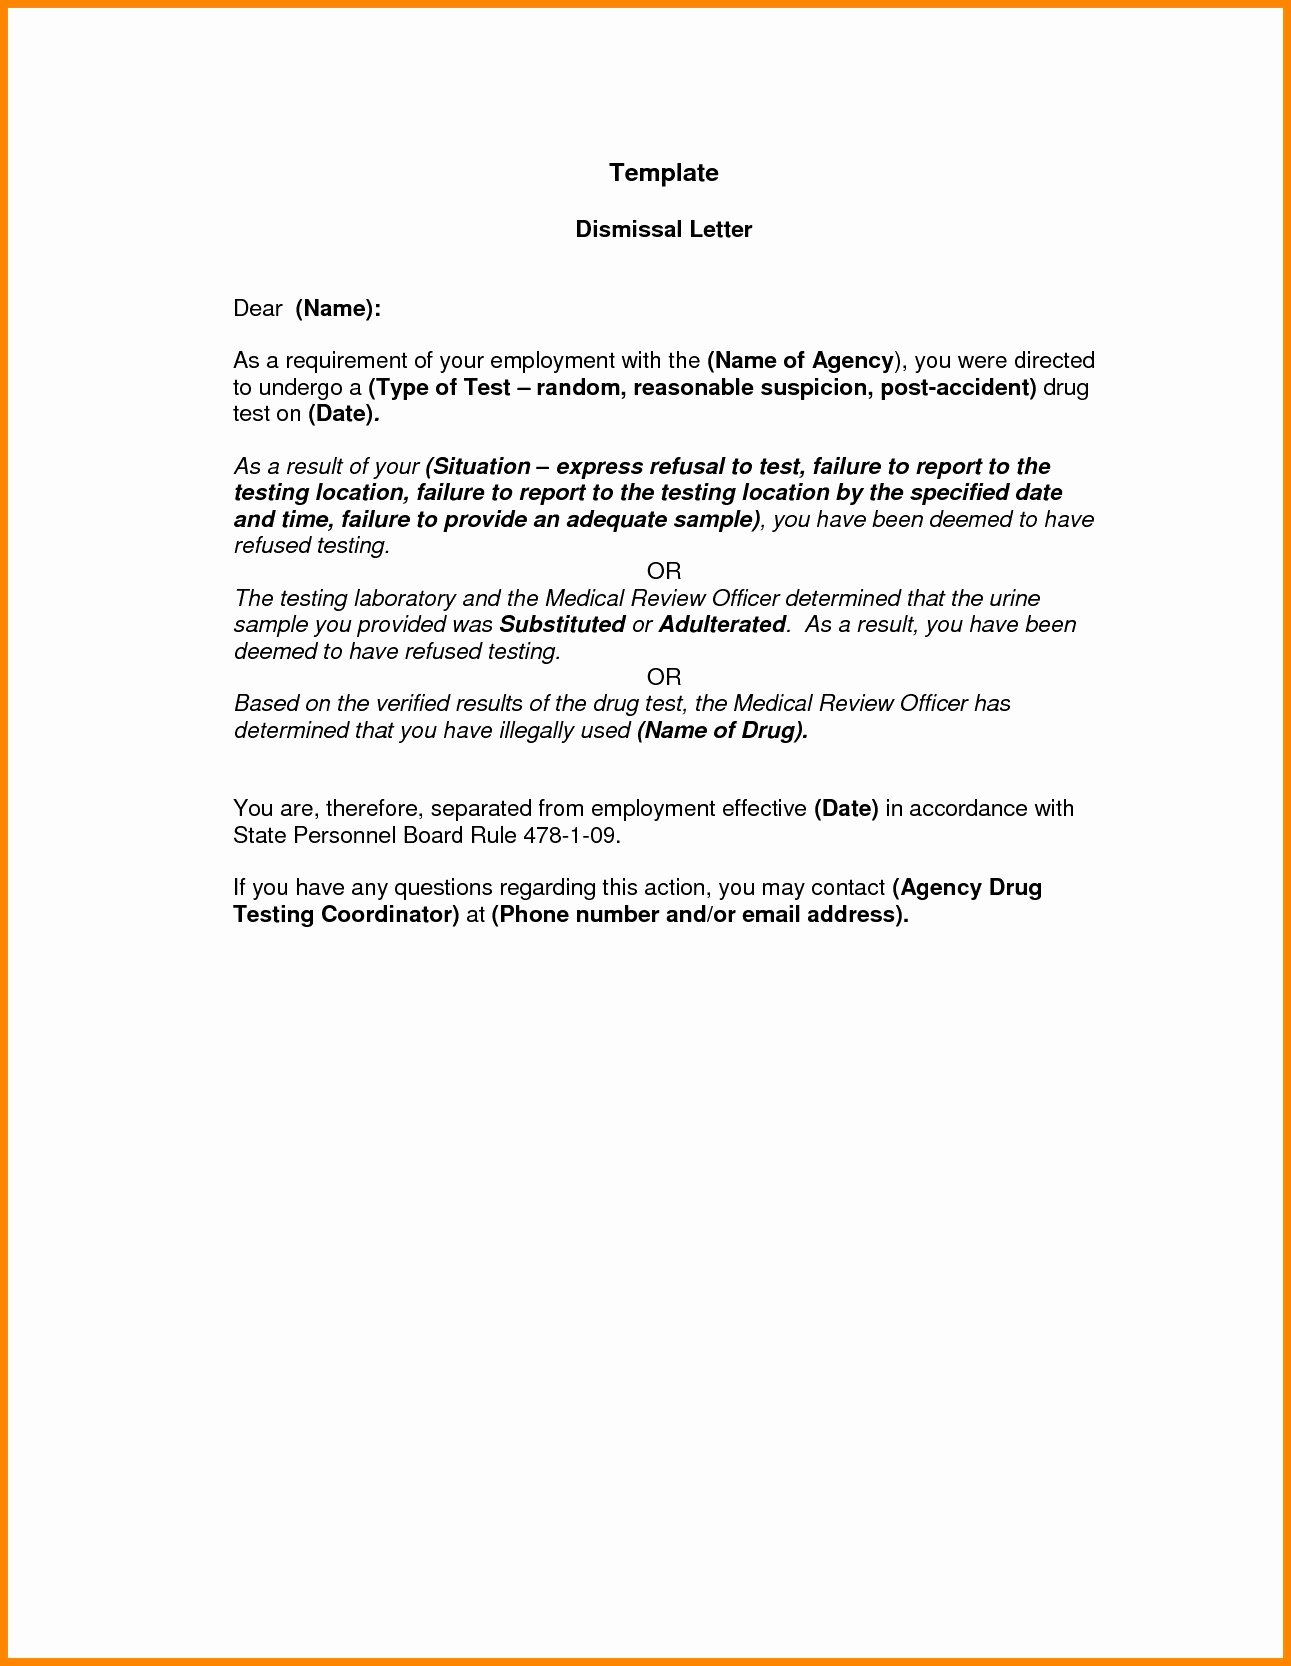 Sample Letter to Patient Luxury Dental Patient Dismissal Letter Template Samples